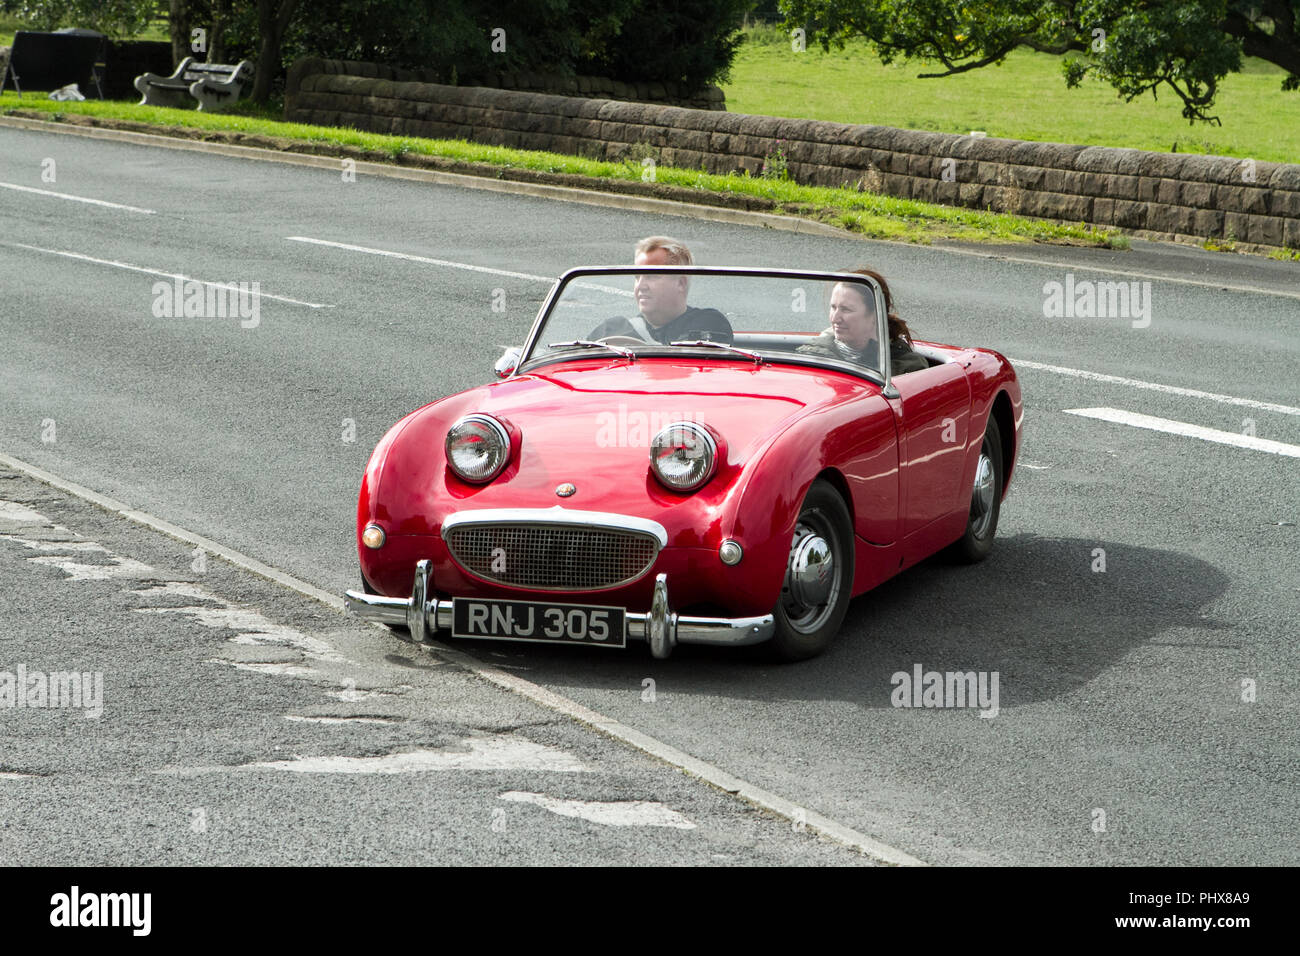 Red Austin Healey Classic Cars Veteran Restored Car Classic